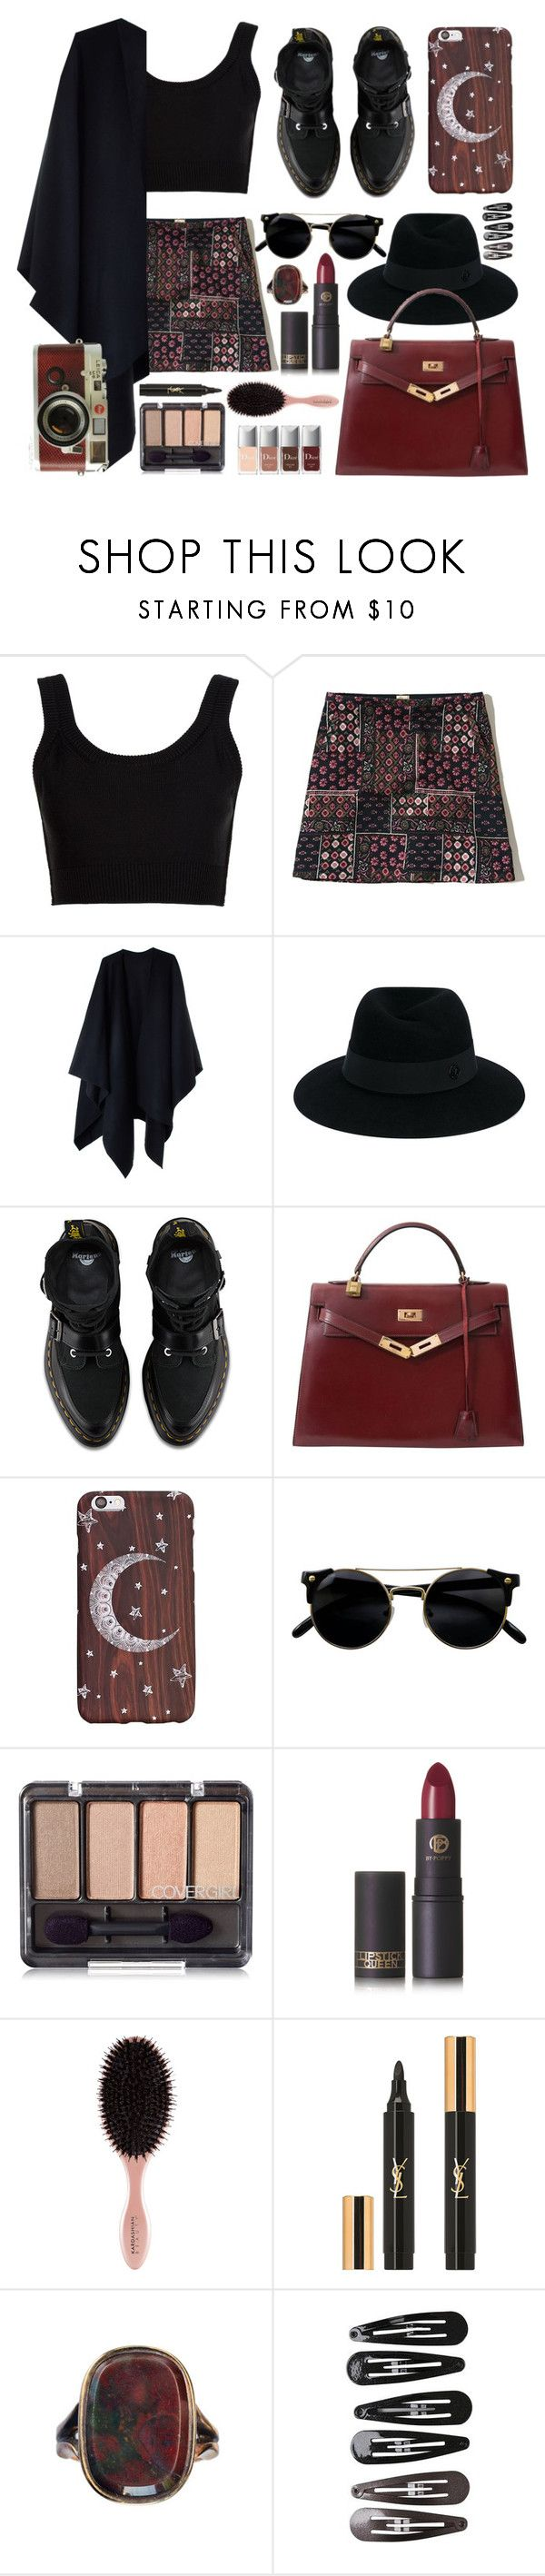 """""""serene syrena"""" by faradila ❤ liked on Polyvore featuring Calvin Klein Collection, Hollister Co., Acne Studios, Maison Michel, Hermès, Lipstick Queen, Yves Saint Laurent, Clips, Leica and layers"""